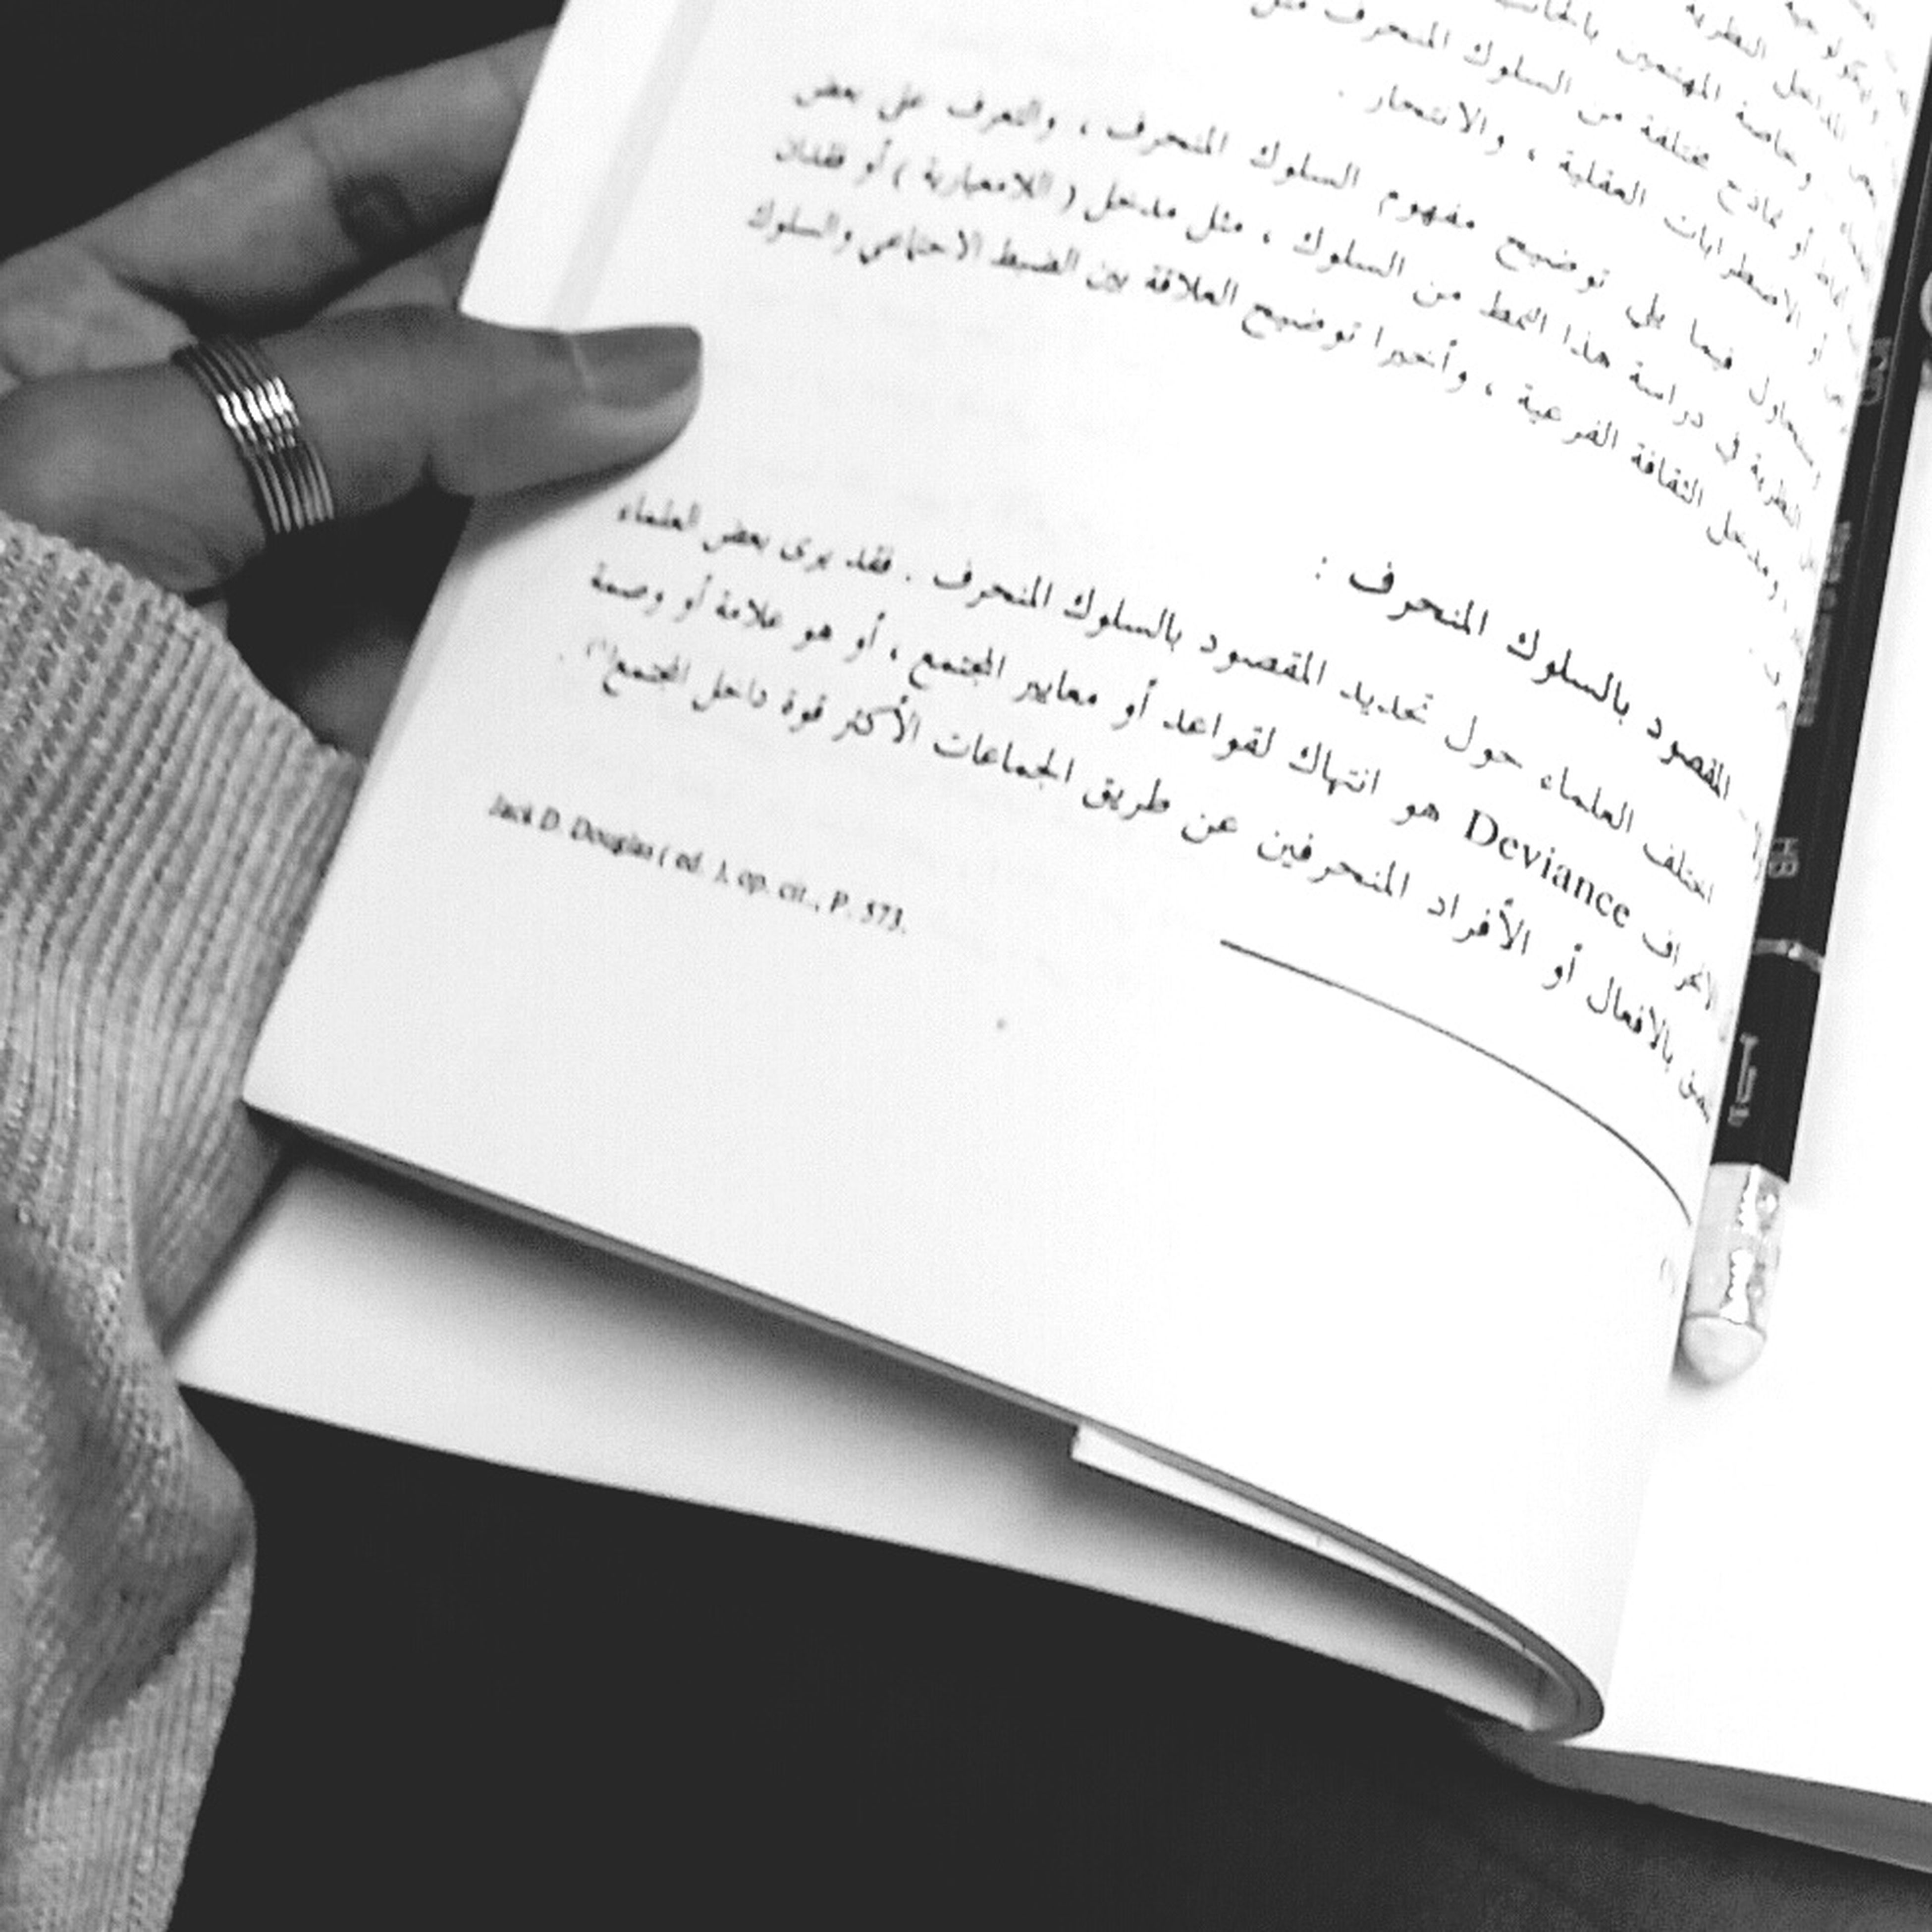 indoors, person, book, part of, cropped, paper, text, human finger, communication, holding, education, close-up, pen, western script, table, unrecognizable person, writing